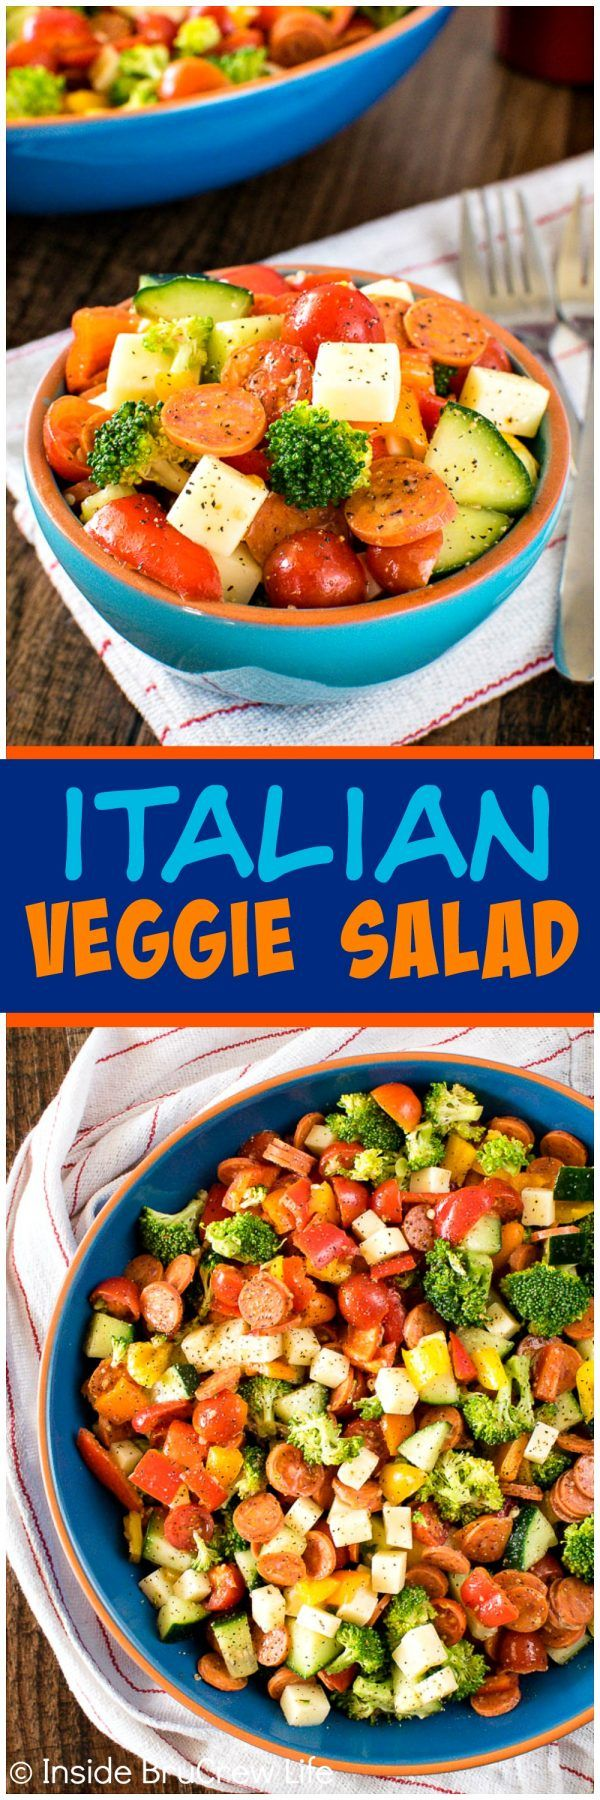 Italian Veggie Salad - all your favorite veggies plus cheese & pepperoni makes this easy salad the perfect healthy dinner recipe!